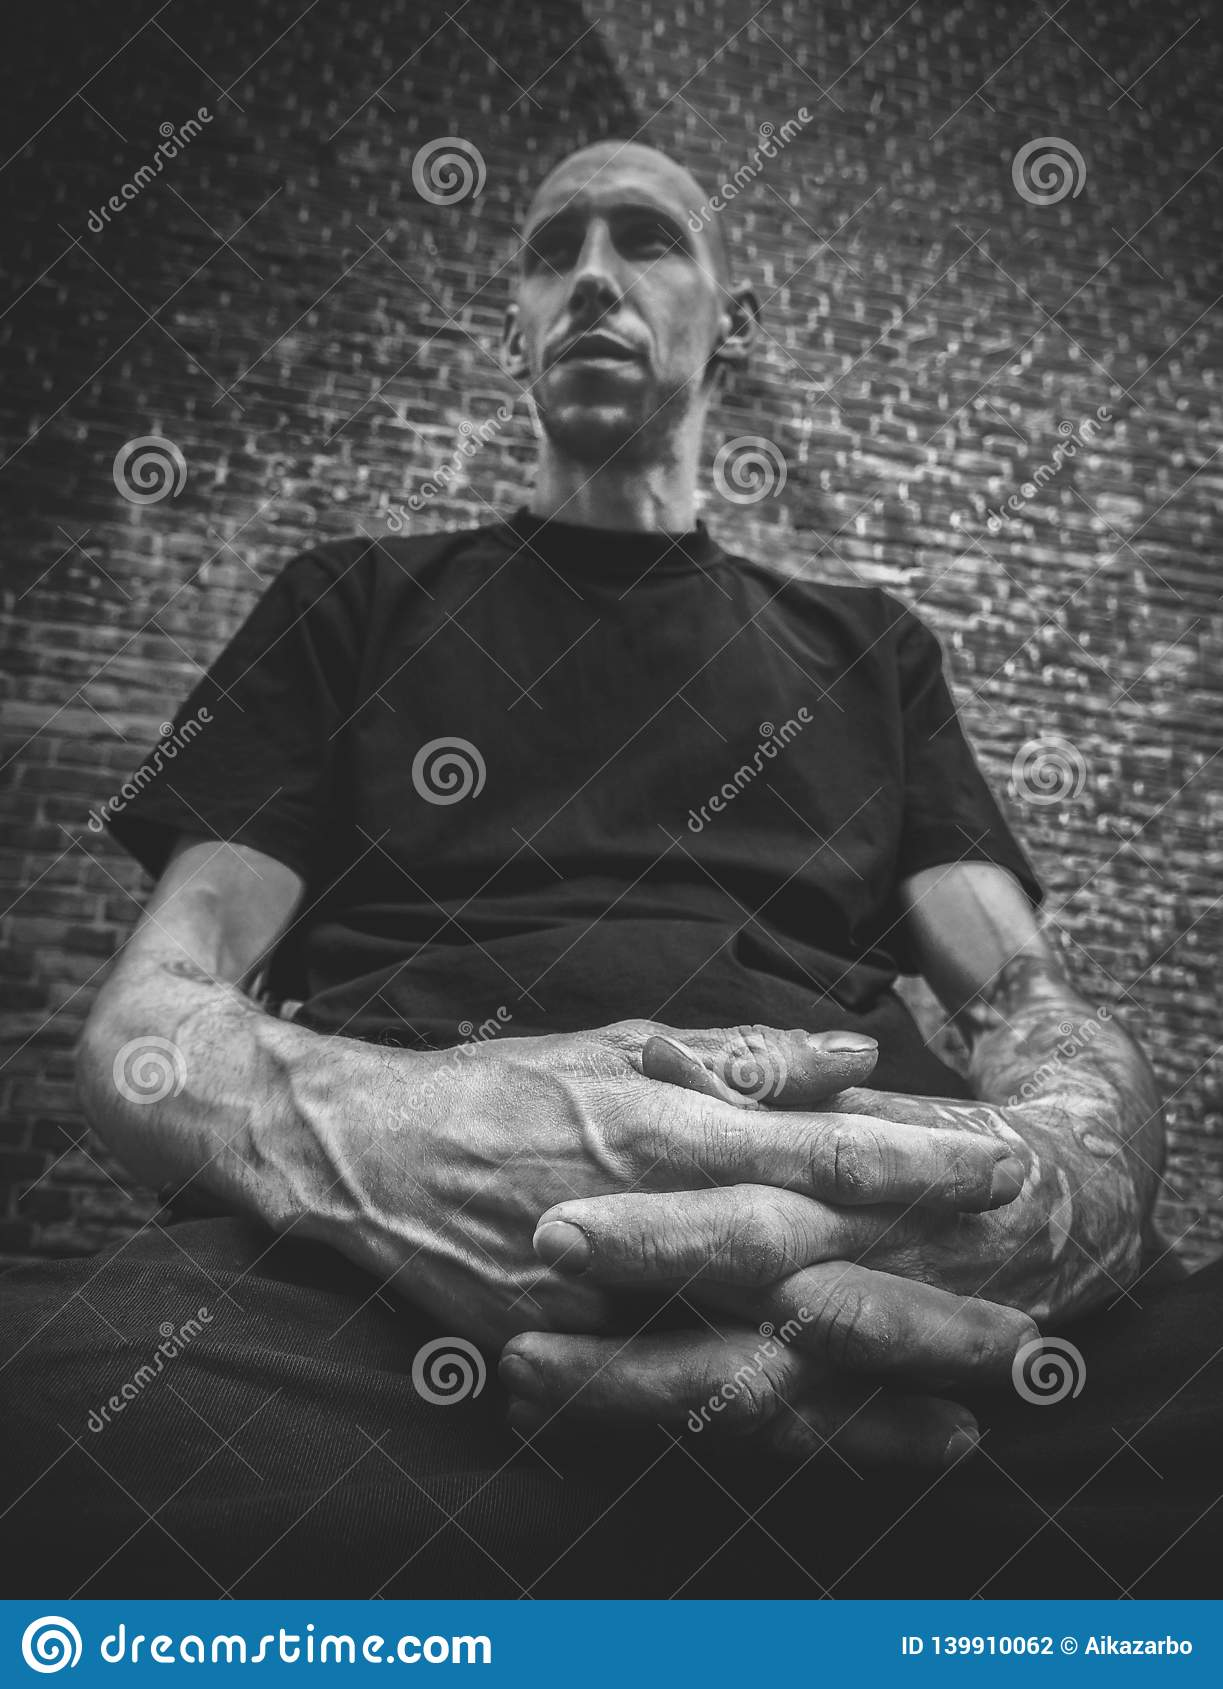 Portrait of a bald man with a brutal appearance and arms with tattoos in the foreground in black and white